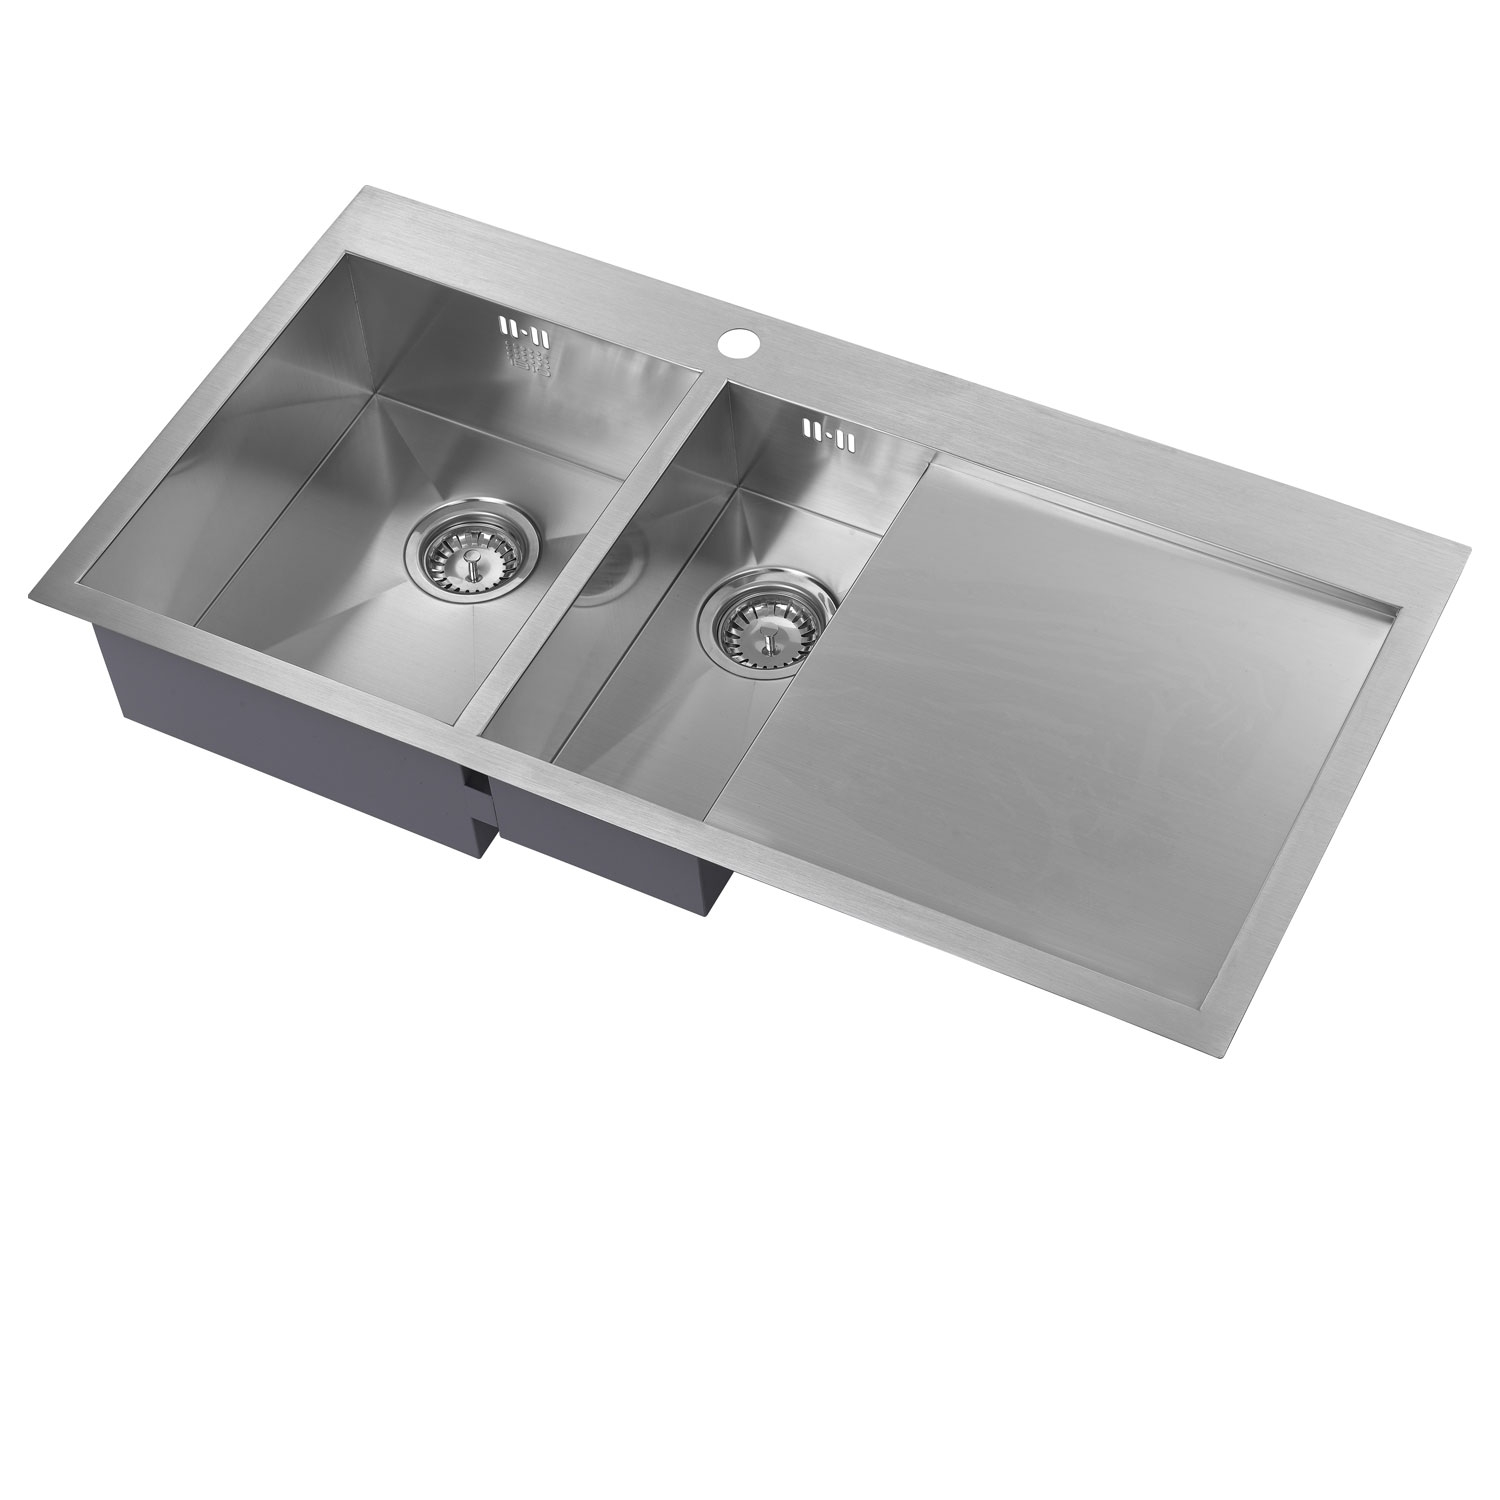 The 1810 Company Zenduo 6 I-F 1.5 Bowl Kitchen Sink - Left Hand-0